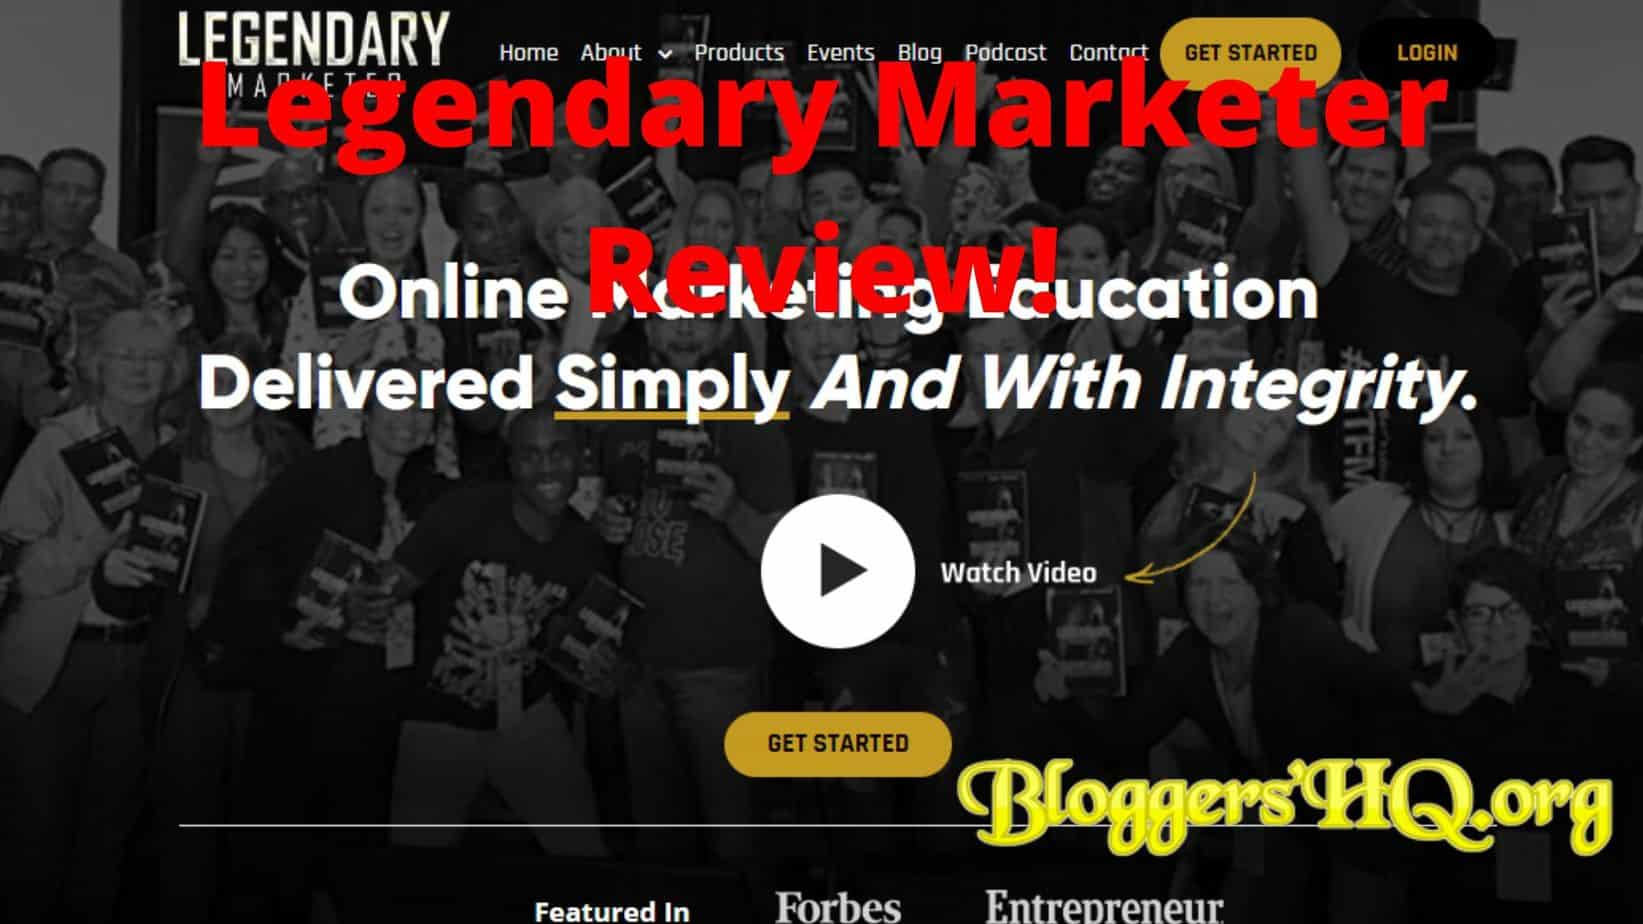 Legendary Marketer Internet Marketing Program Colors And Sizes